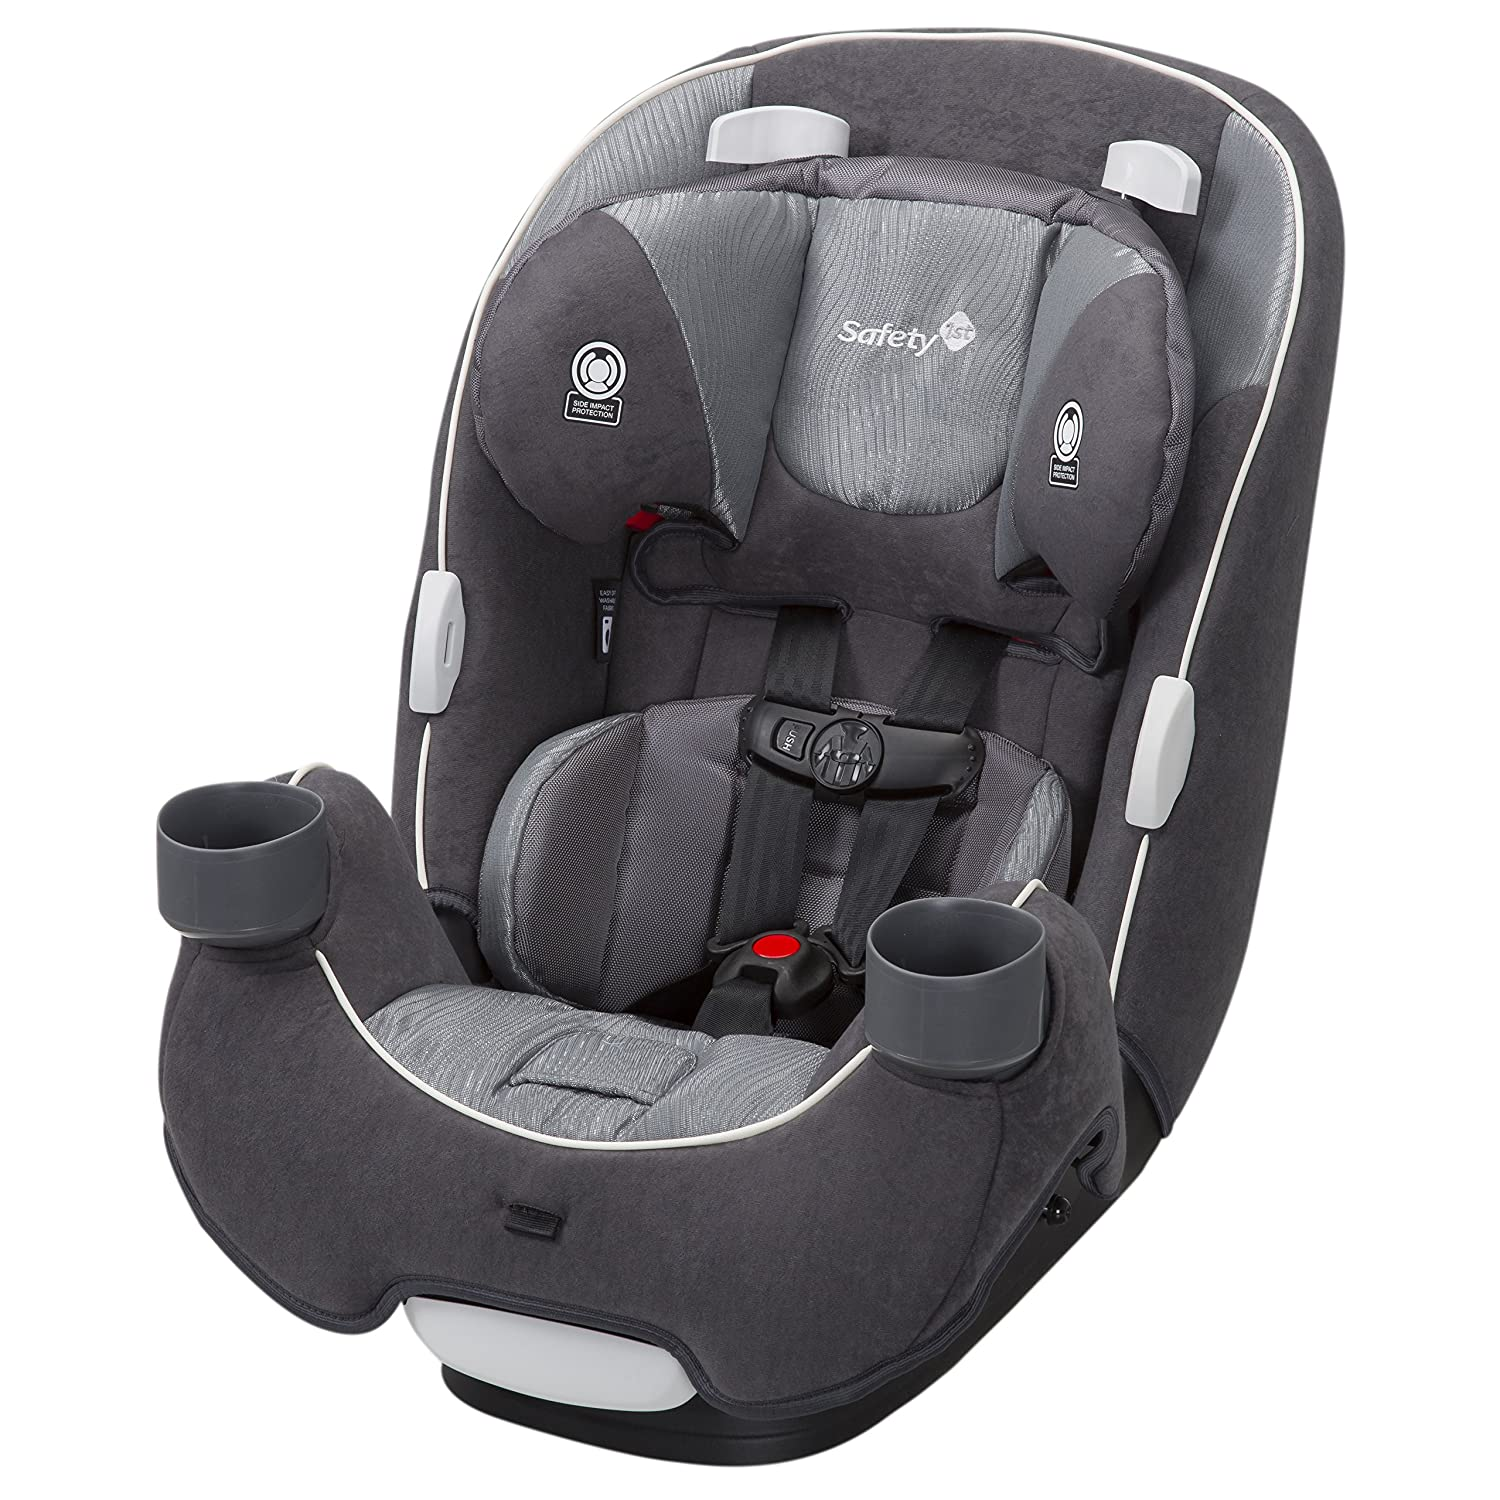 Amazon.com: Safety 1st Ever-Fit 3-in1 Convertible